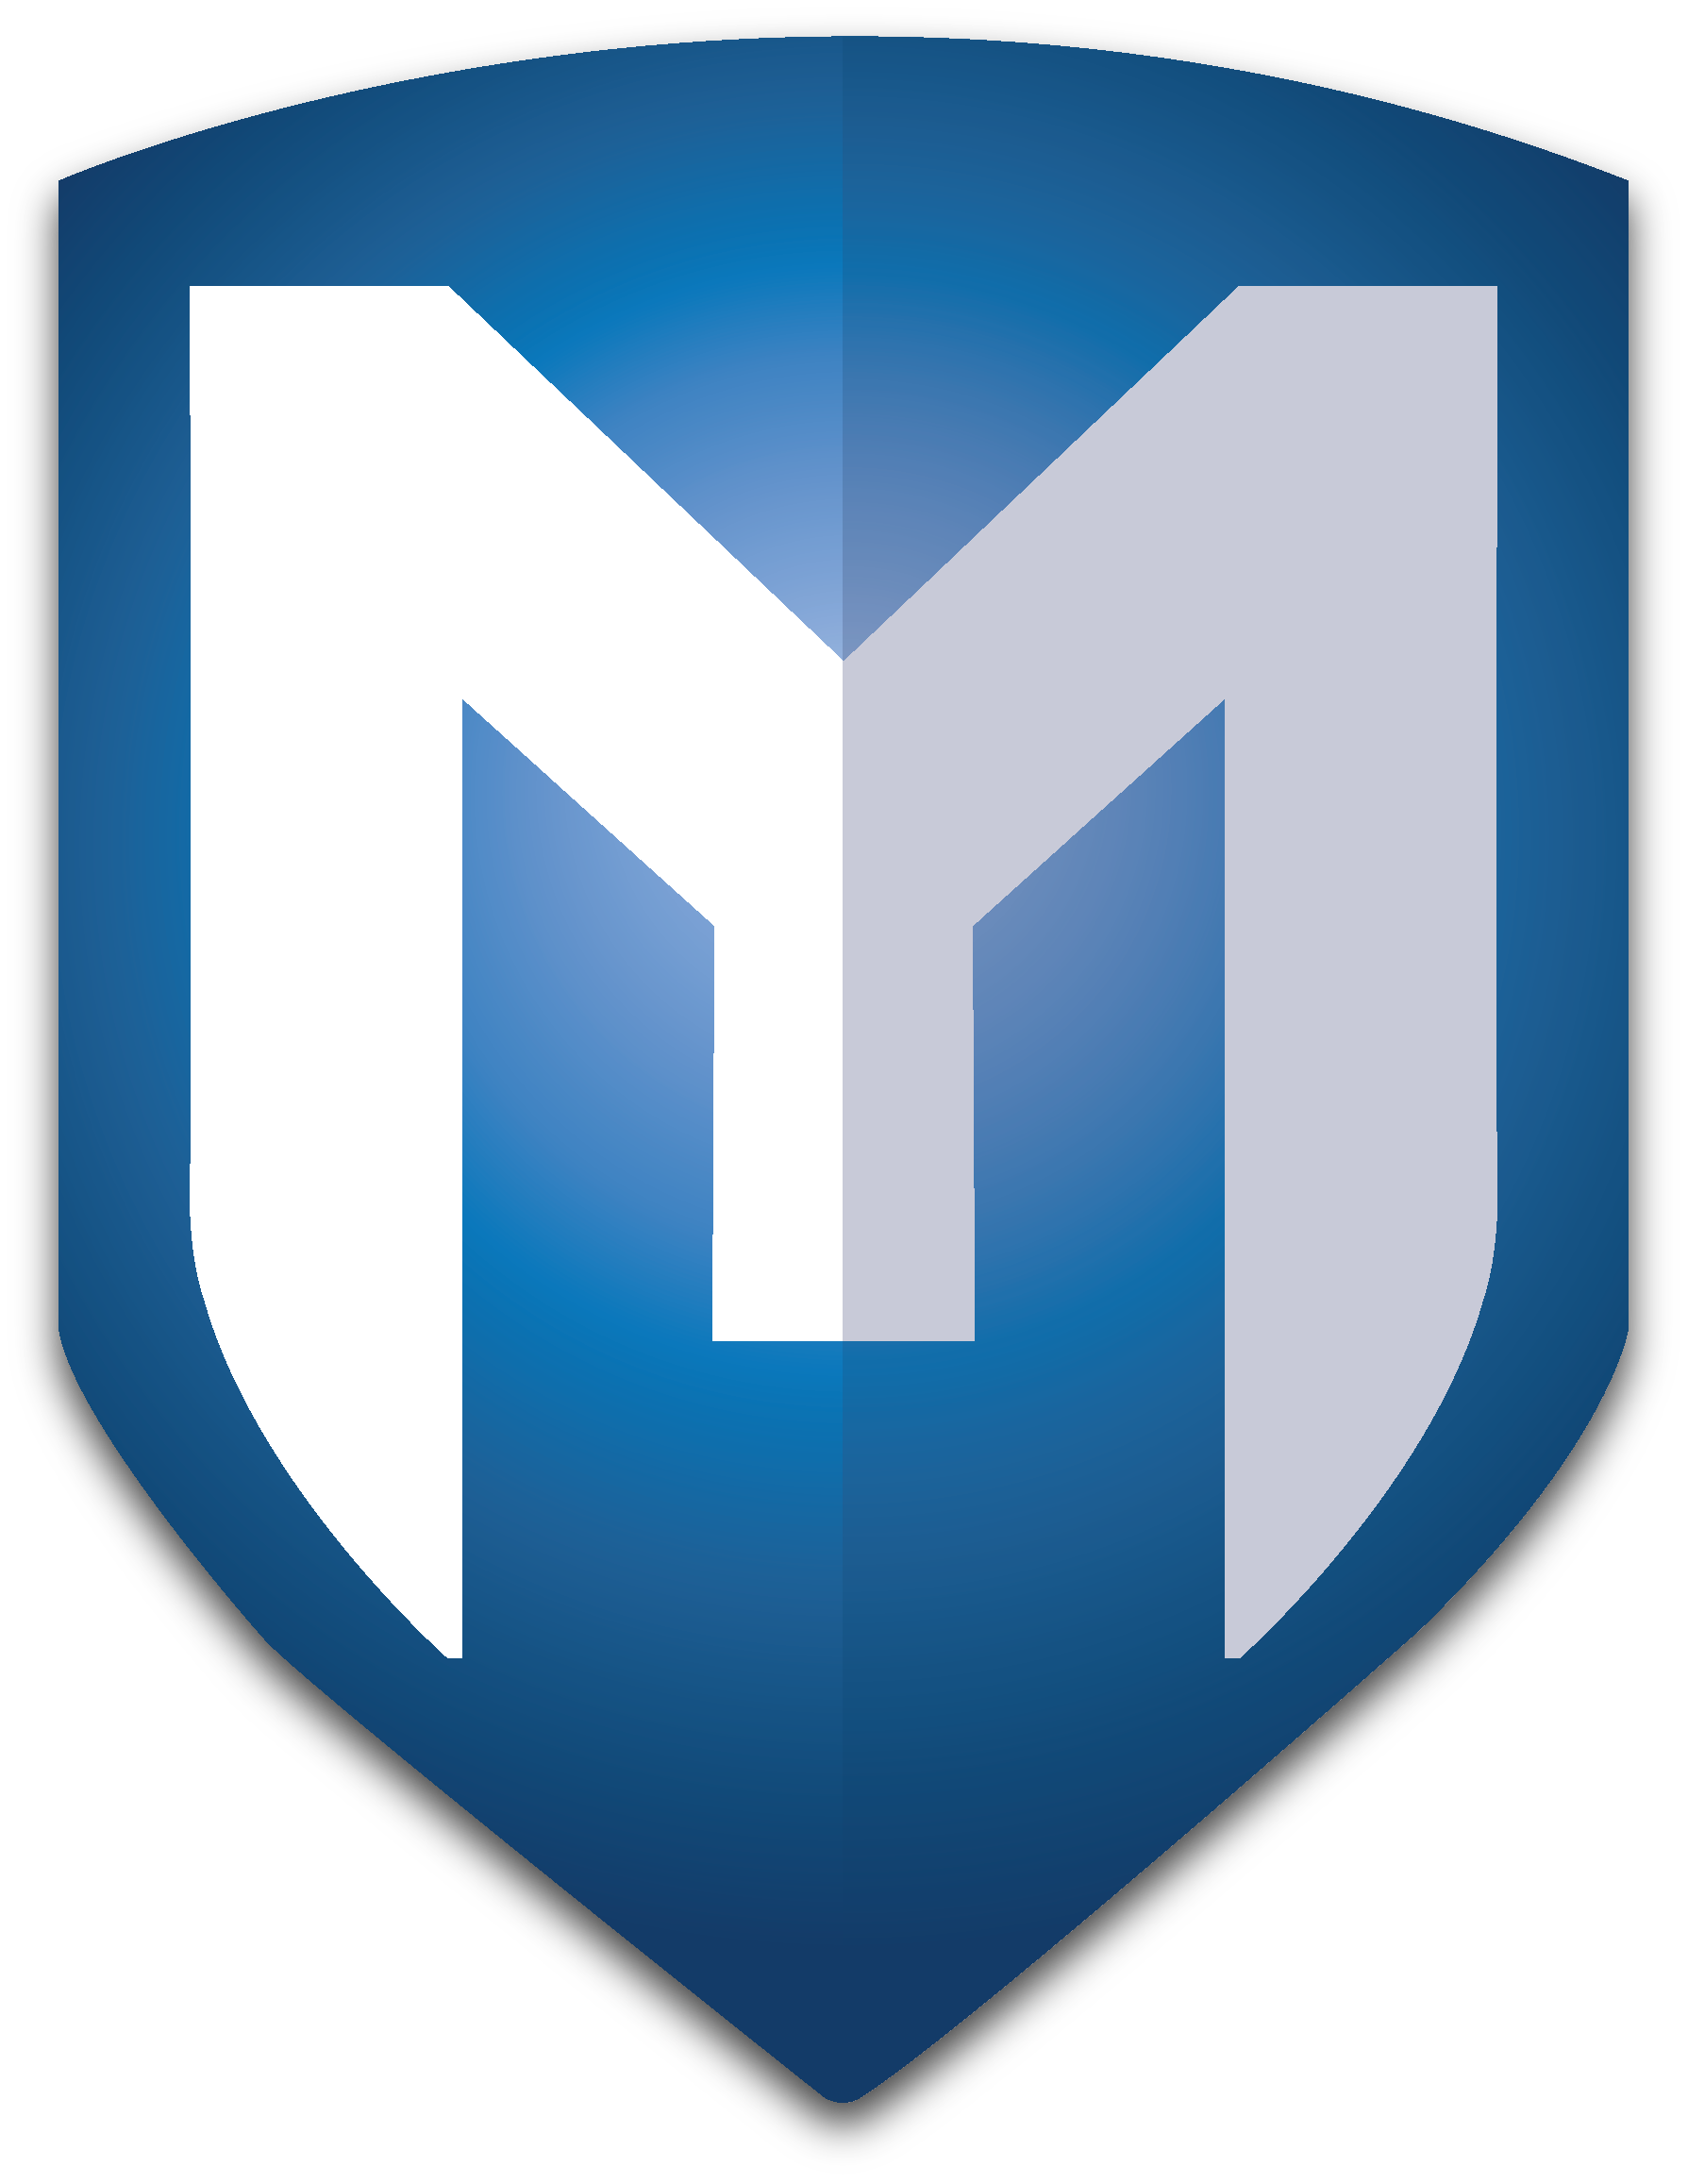 metasploit research Exploit development in the metasploit framework next, we are going to cover one of the most well-known and popular aspects of the metasploit framework, exploit development .